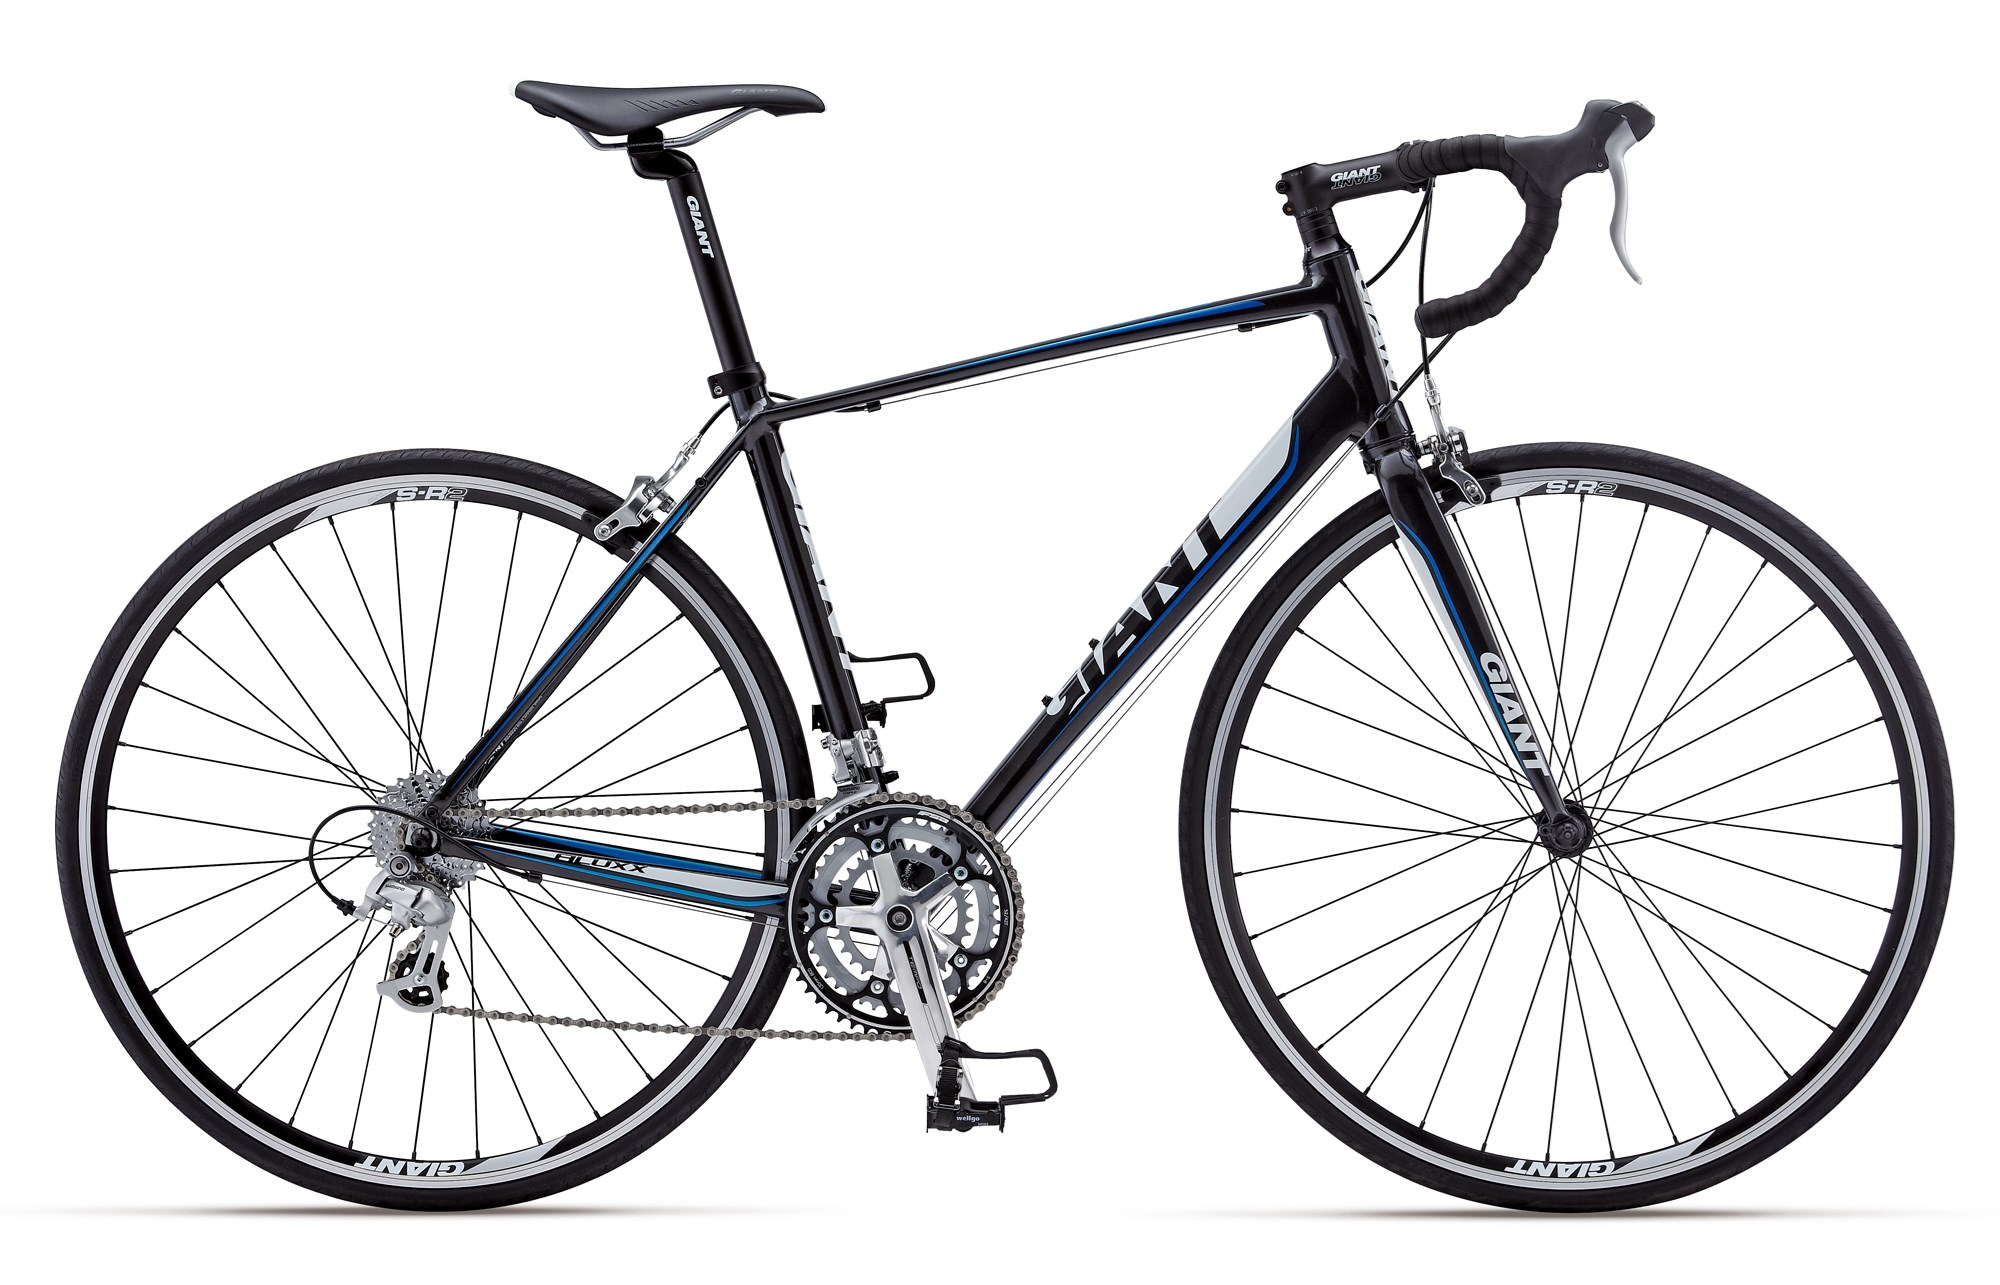 9f060f1651c Giant Defy 5, Size: Medium Reserved as Deposit taken - Kilmallock Cycles